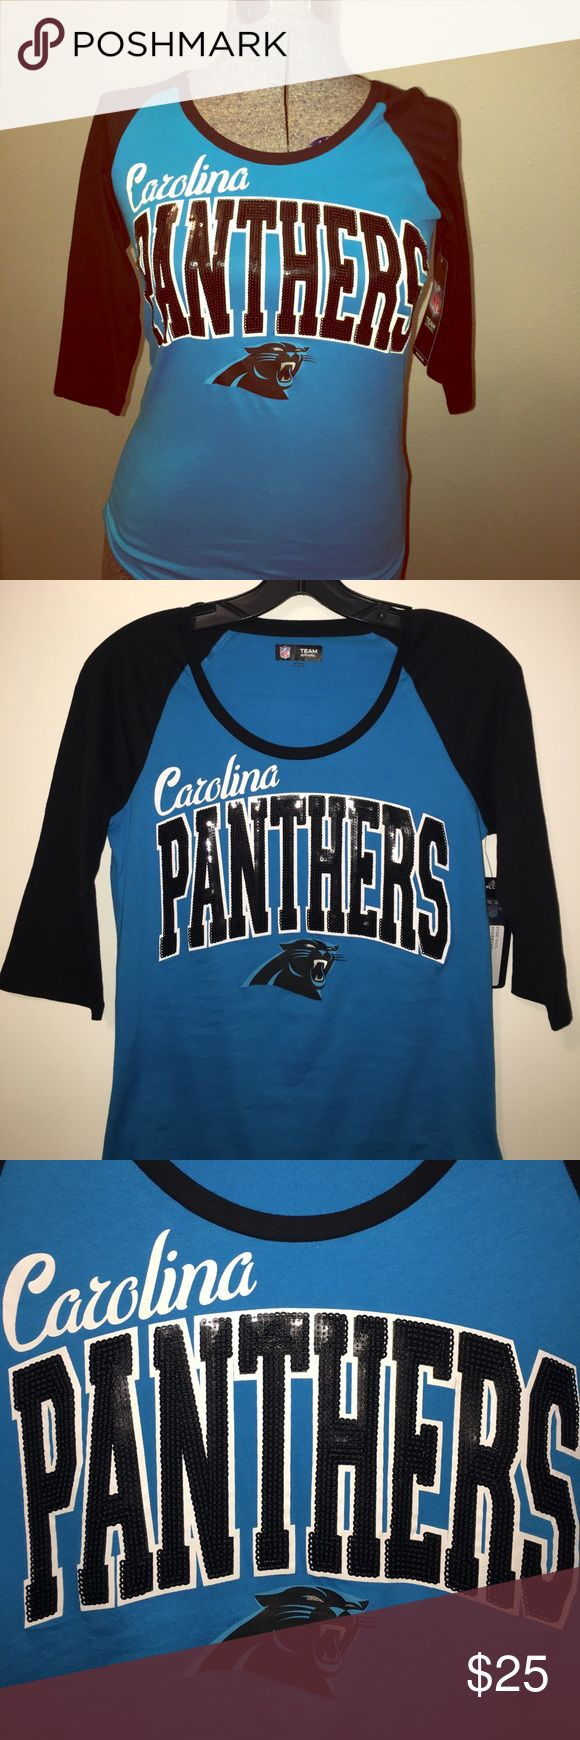 Carolina Panthers Women's 3/4 Sleeve Sequins Tee This is a cute one!💙 NFL Carolina Panthers Women's raglan 3/4 sleeve sequins tee. Carolina blue with black sleeves and black sparkle sequins. 100% Cotton. Brand new with tags. Women's size small. Tops Tees - Long Sleeve